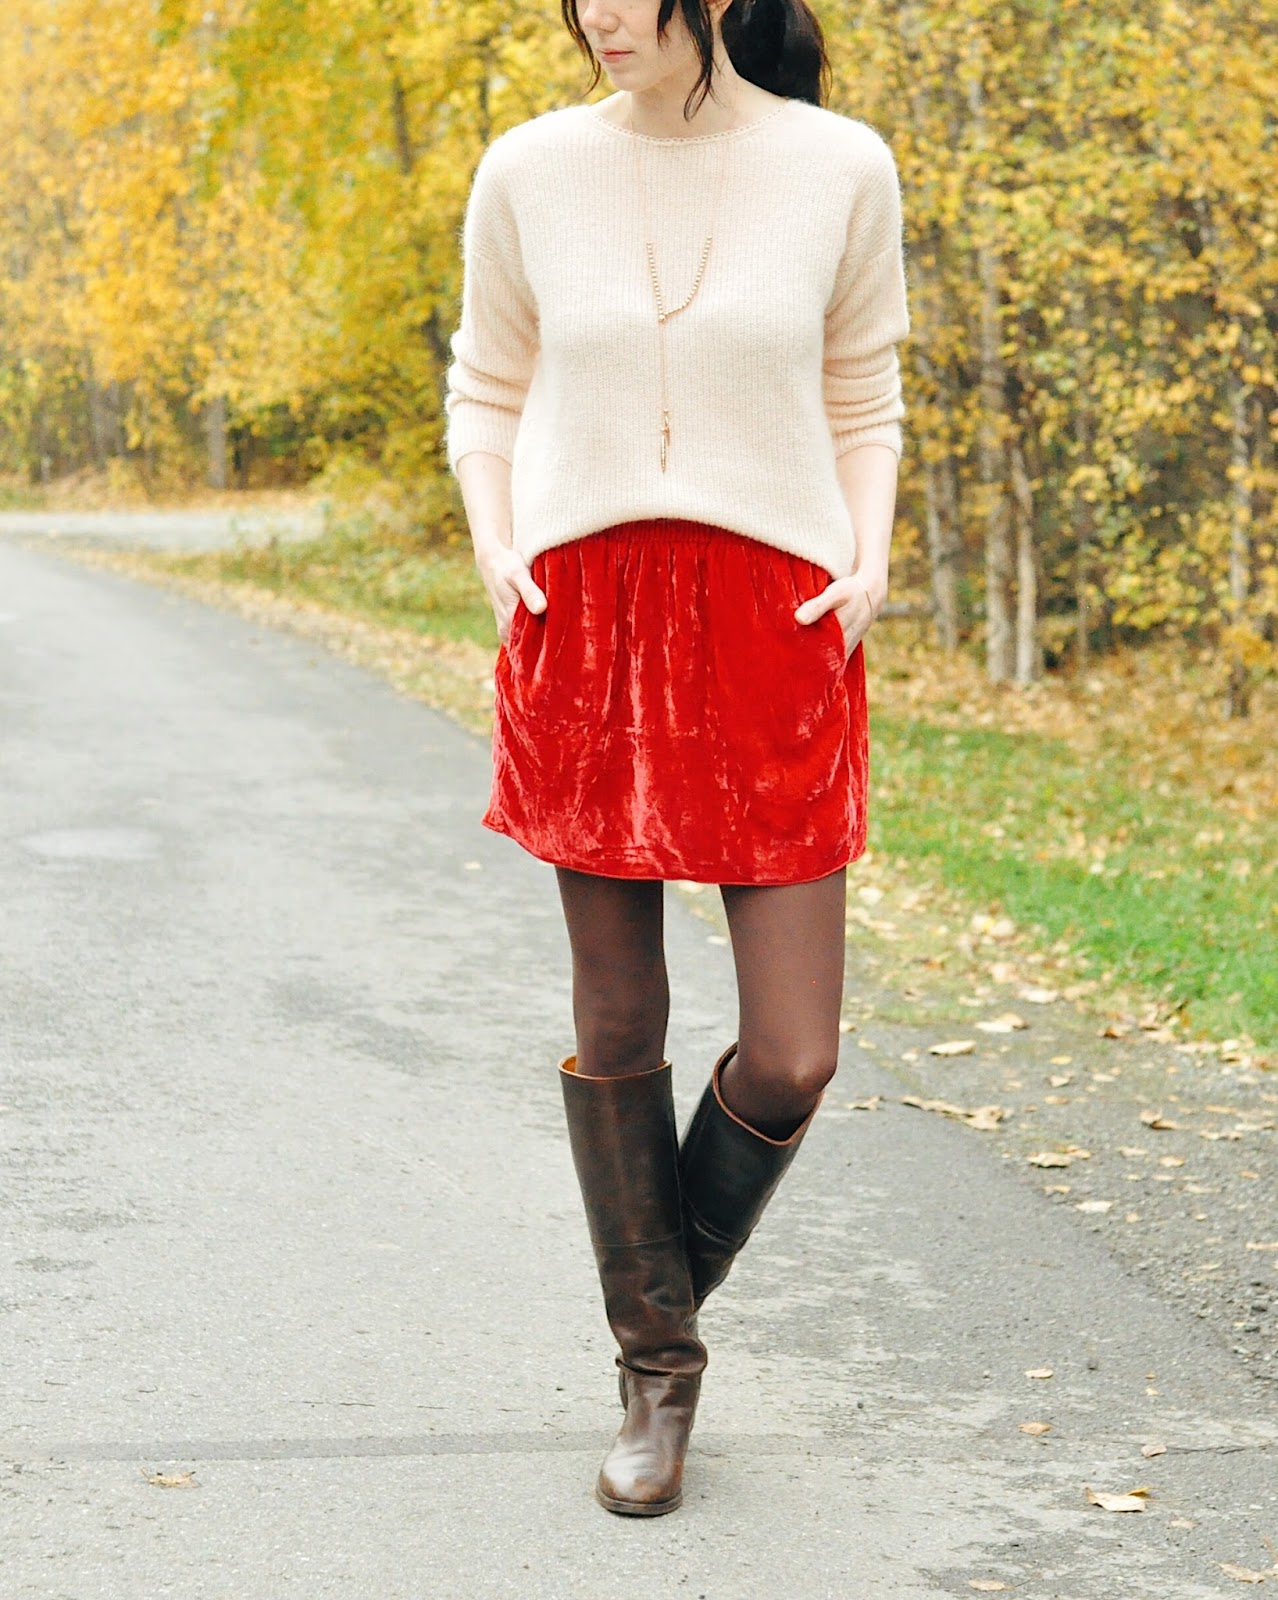 sophie sweater sezane isabel marant riding boots